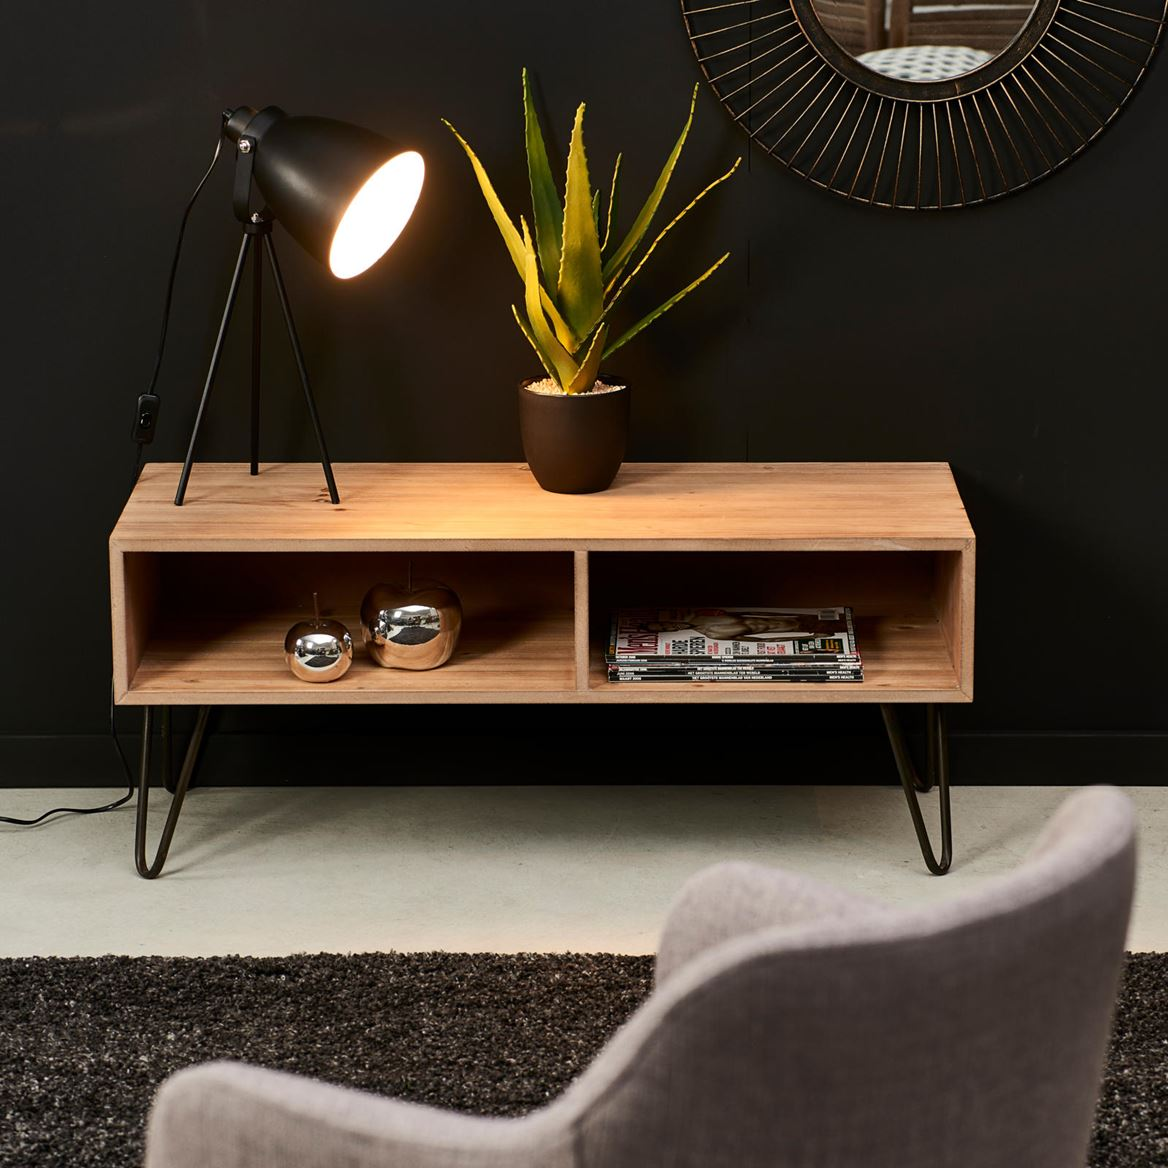 Meuble Tv Jeffrey - Casa Meuble Tv Et Canada Set Featuring Sunpan Furniture System [mjhdah]https://s-media-cache-ak0.pinimg.com/originals/d6/fc/d6/d6fcd65b9e7bda3fd6cc37b7fb5b5d25.jpg